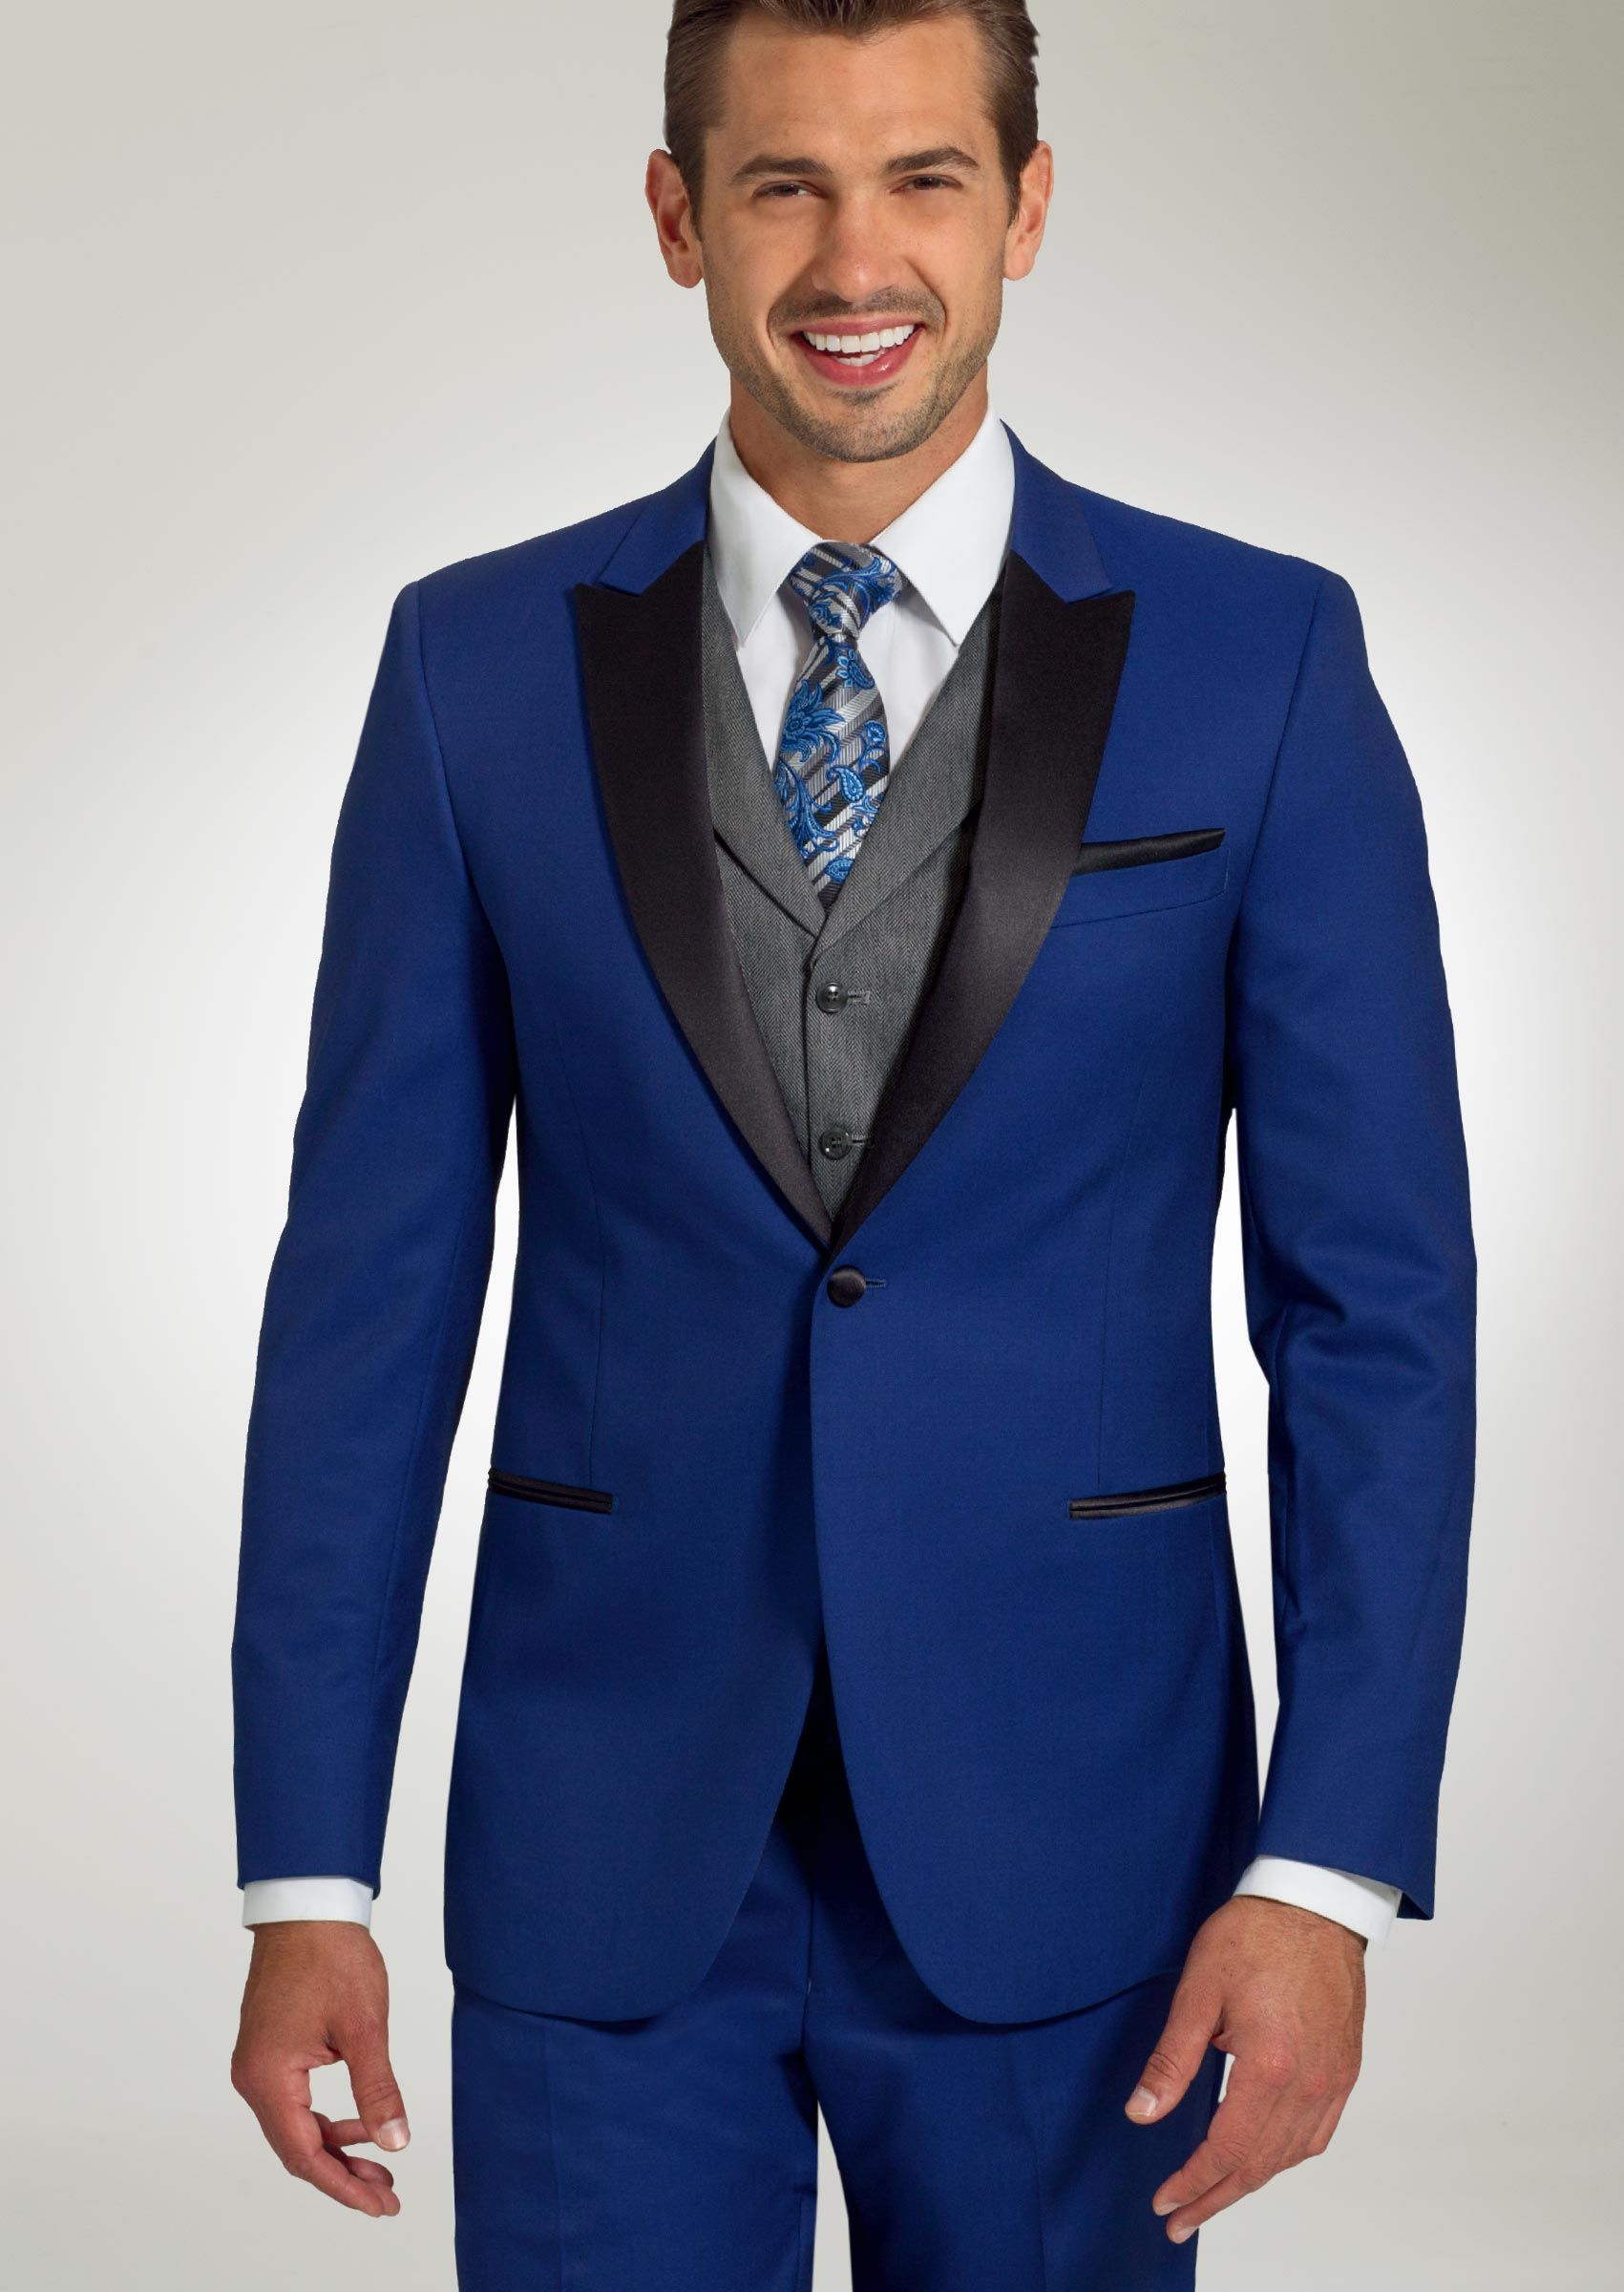 Cobalt blue tuxedos seemed to be more popular than every